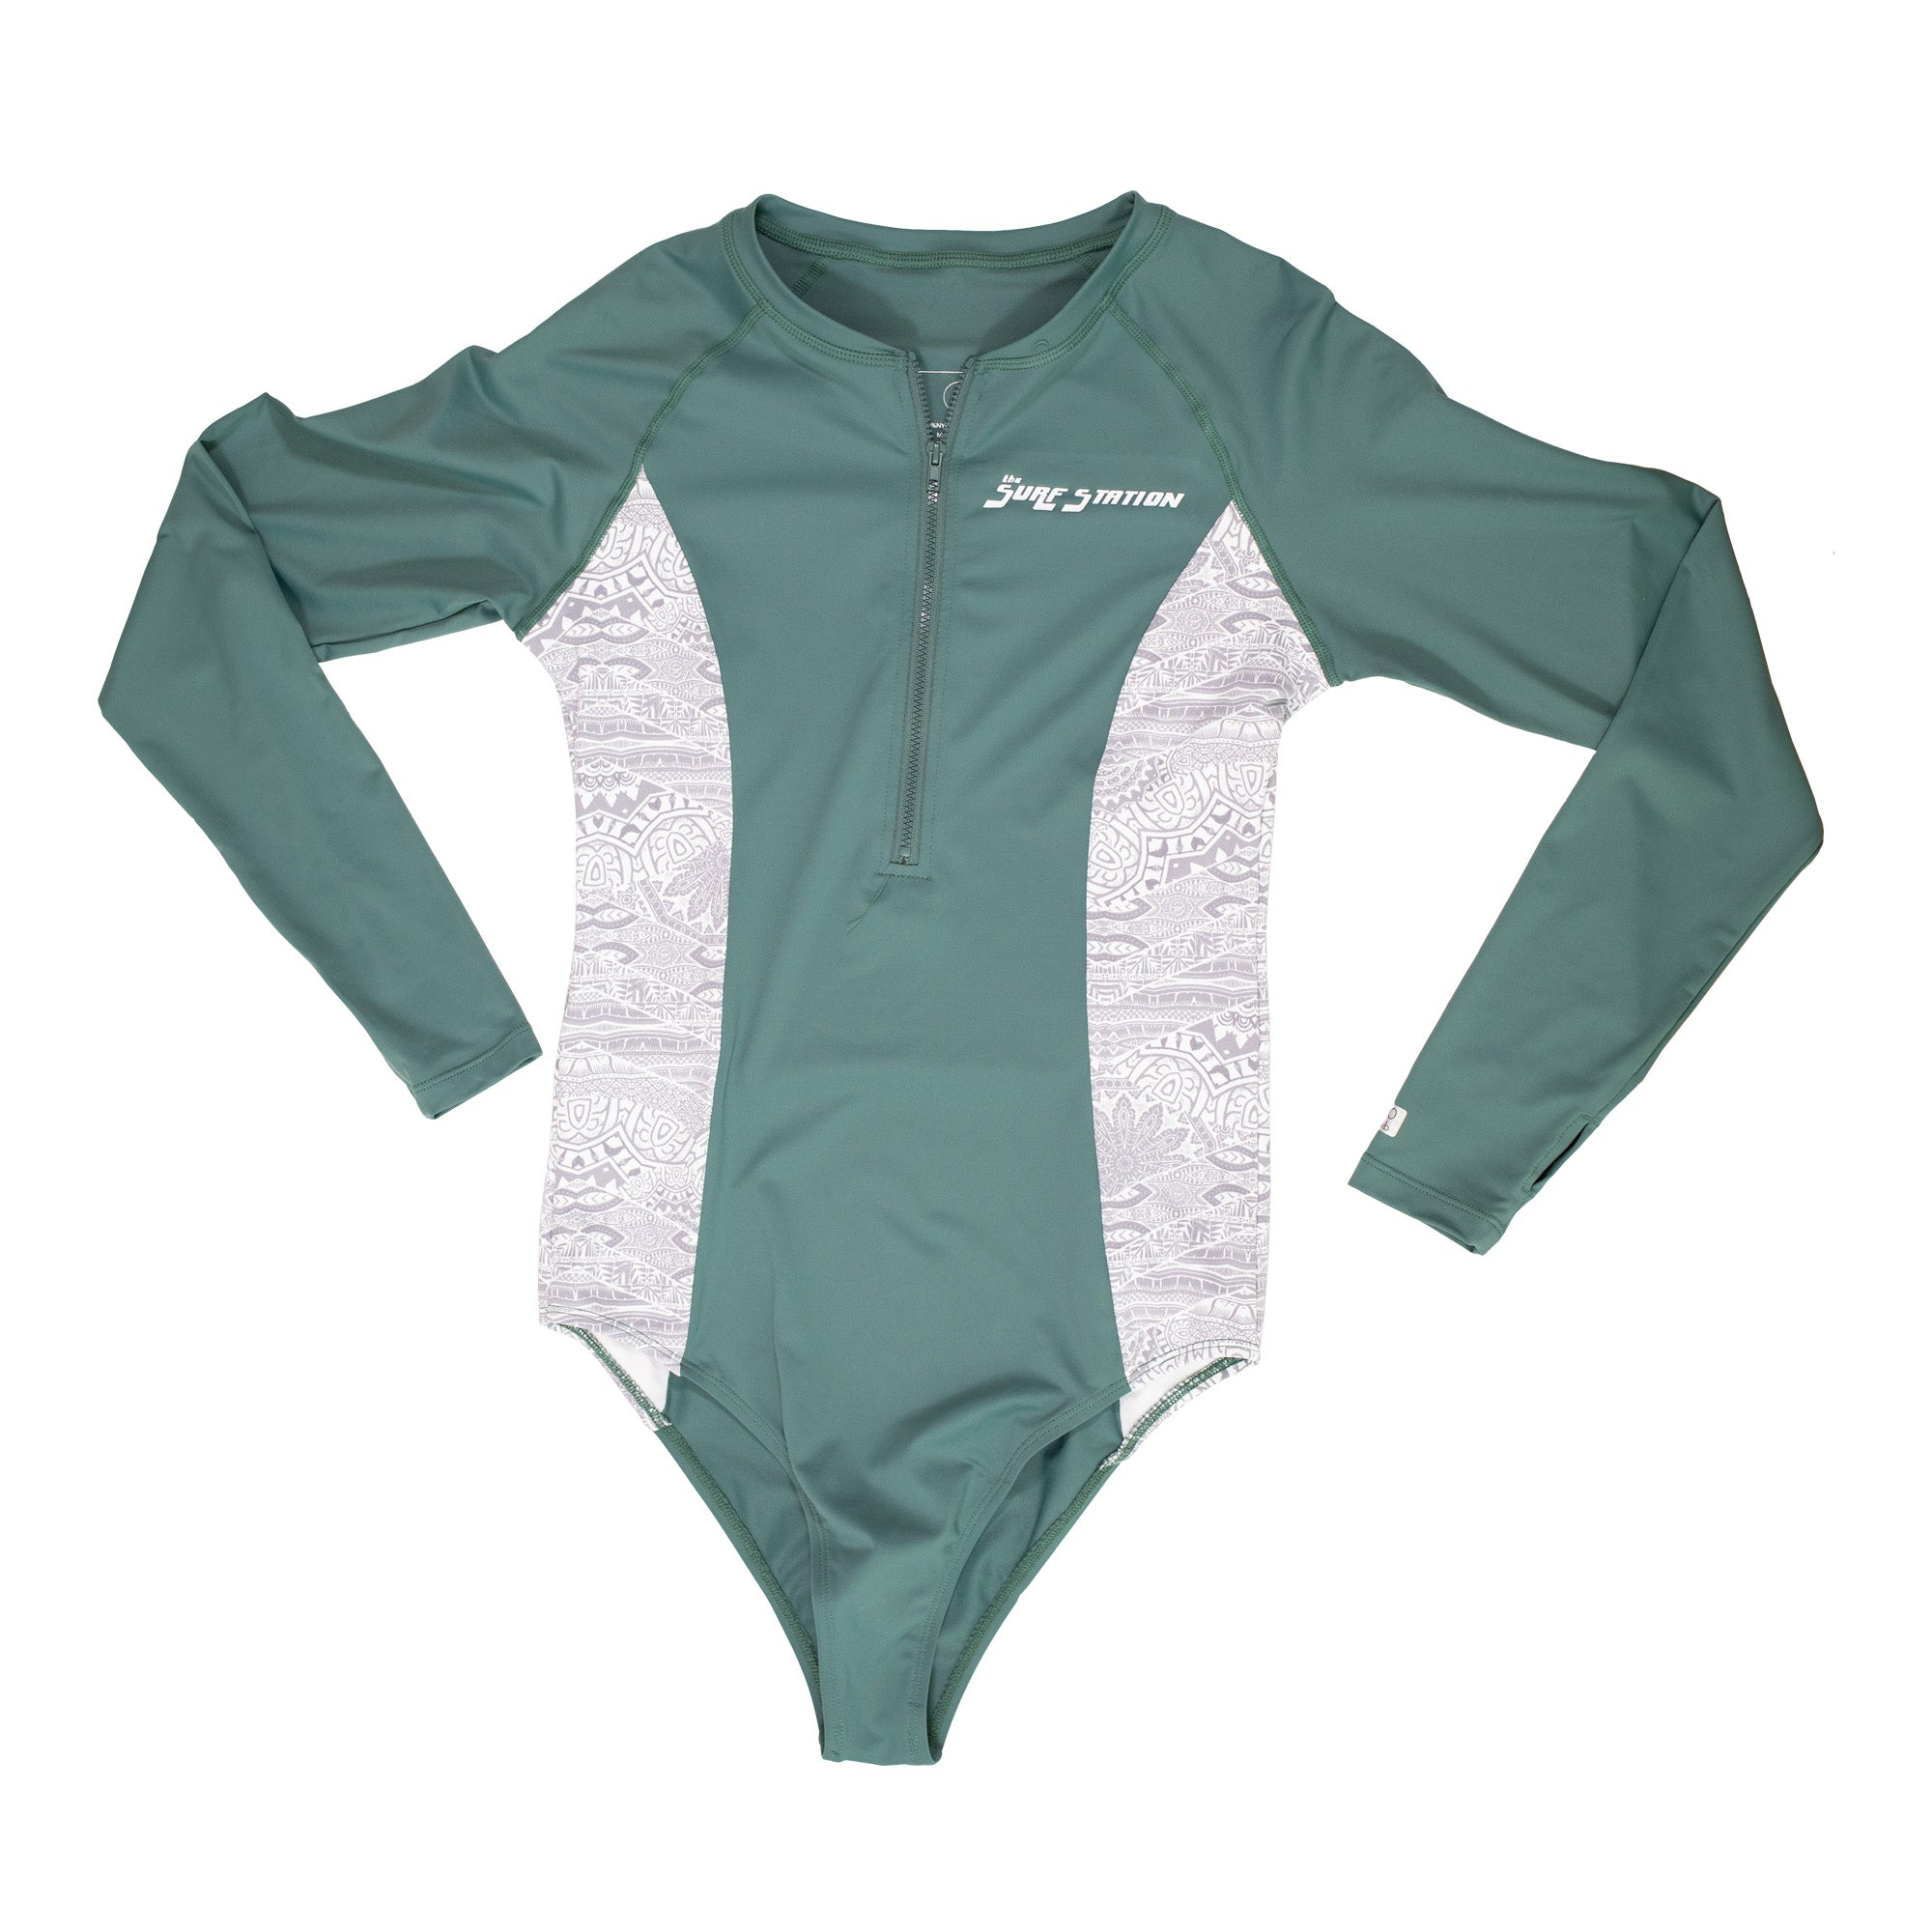 Surf Station Seaz Women's One-Piece L/S Rashguard